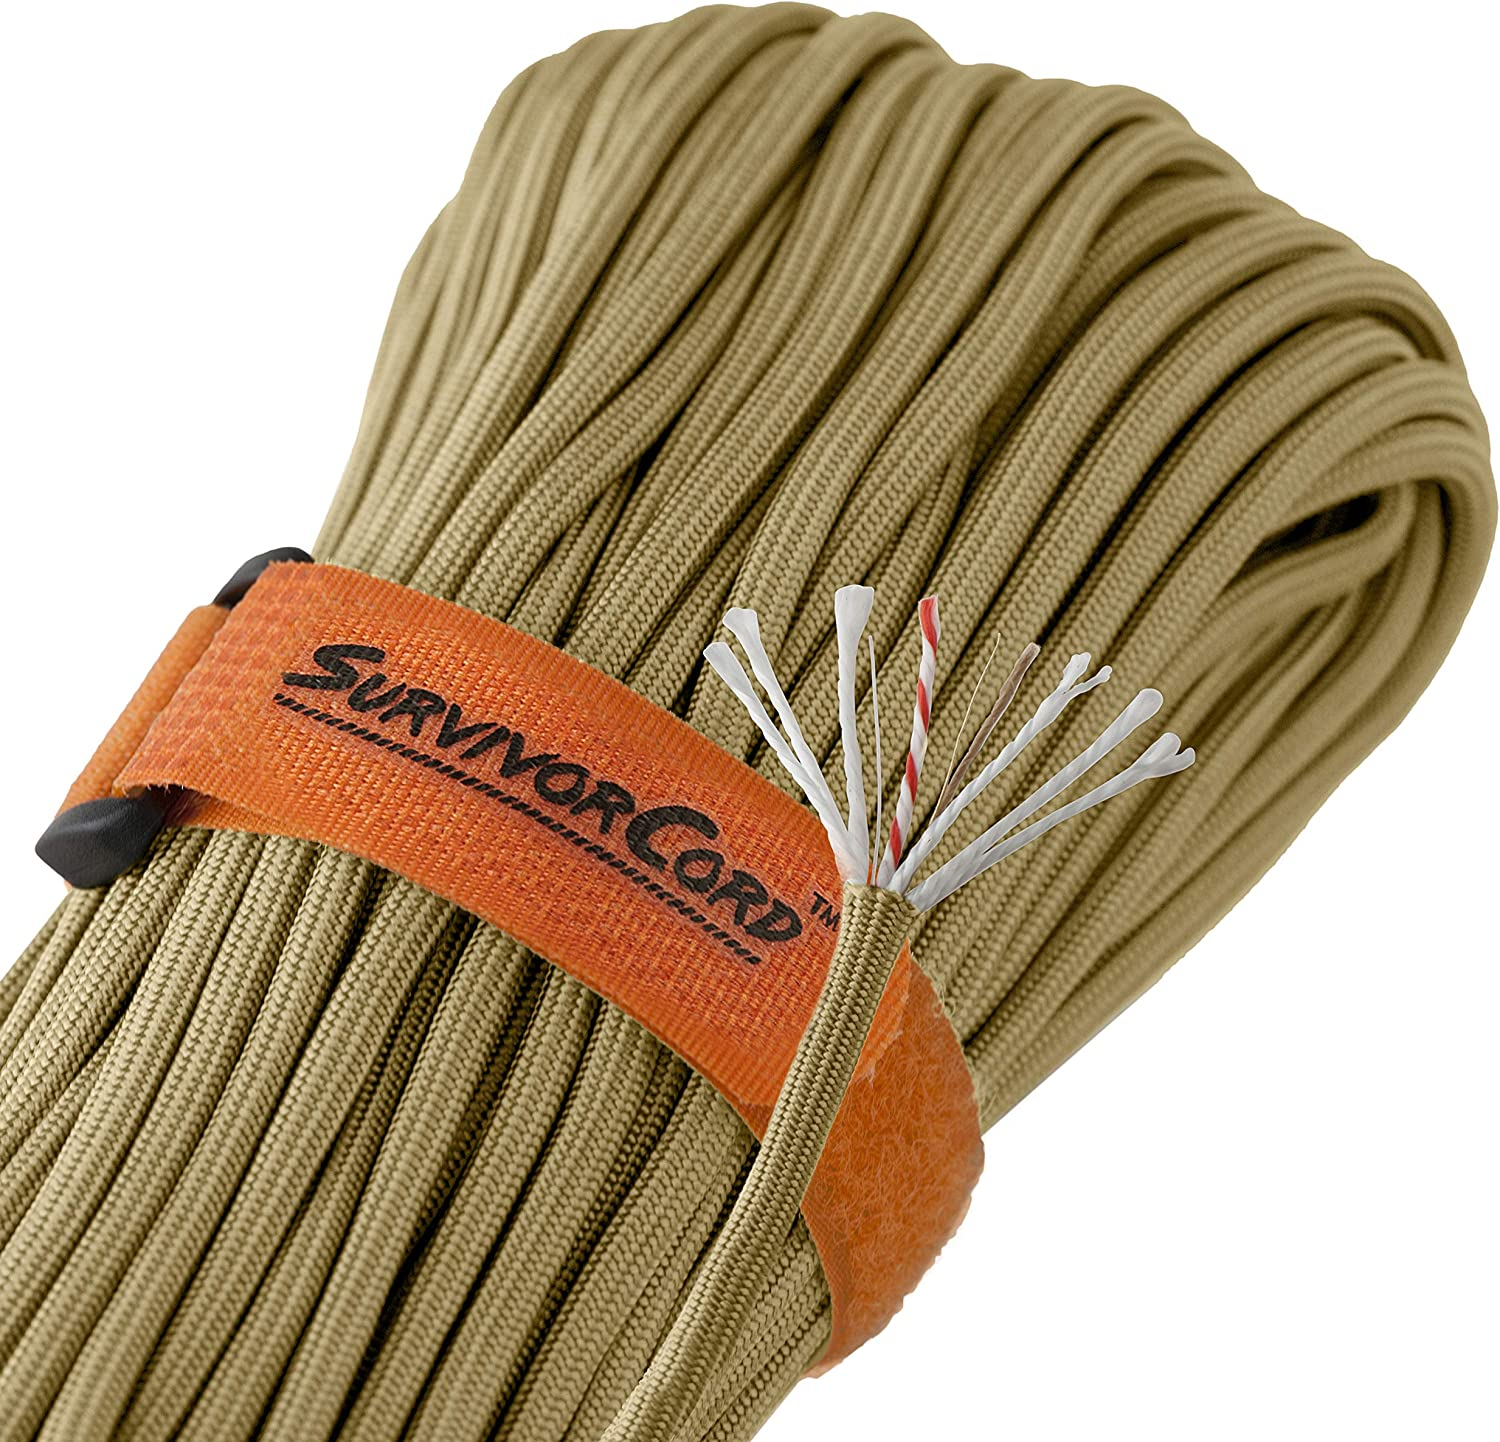 100/% Nylon. Fire-Starter Tinder Military Type III 550 Parachute Cord MIL-C-5040H Titan 620 LB SurvivorCord Paracord and Utility Wire w//Free Ebooks   Patented U.S with Integrated Fishing Line